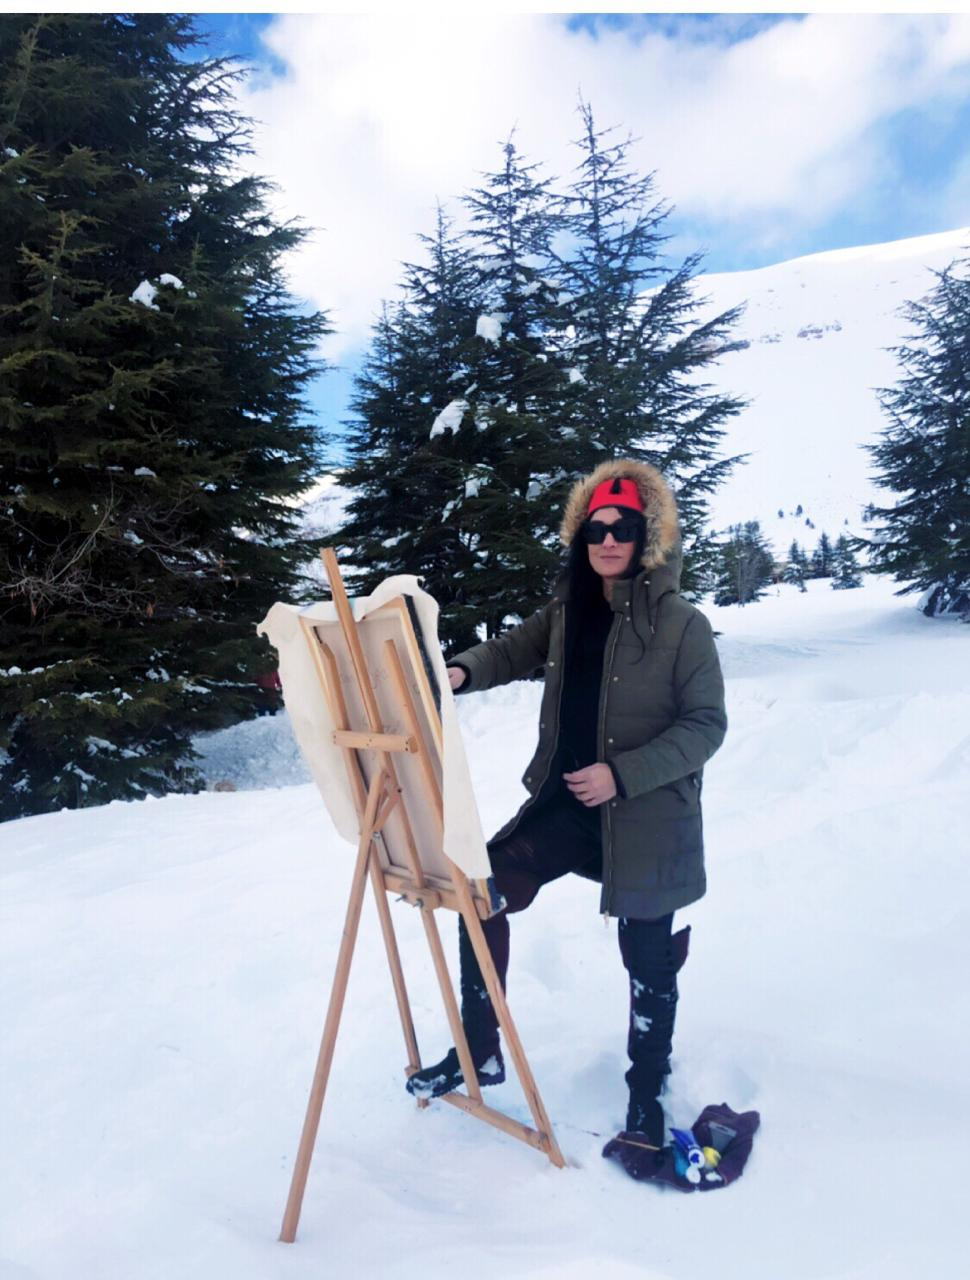 painting in the snow - 2 Famous Stars in Suzi's Art: Hallyday & Freddie Murcery